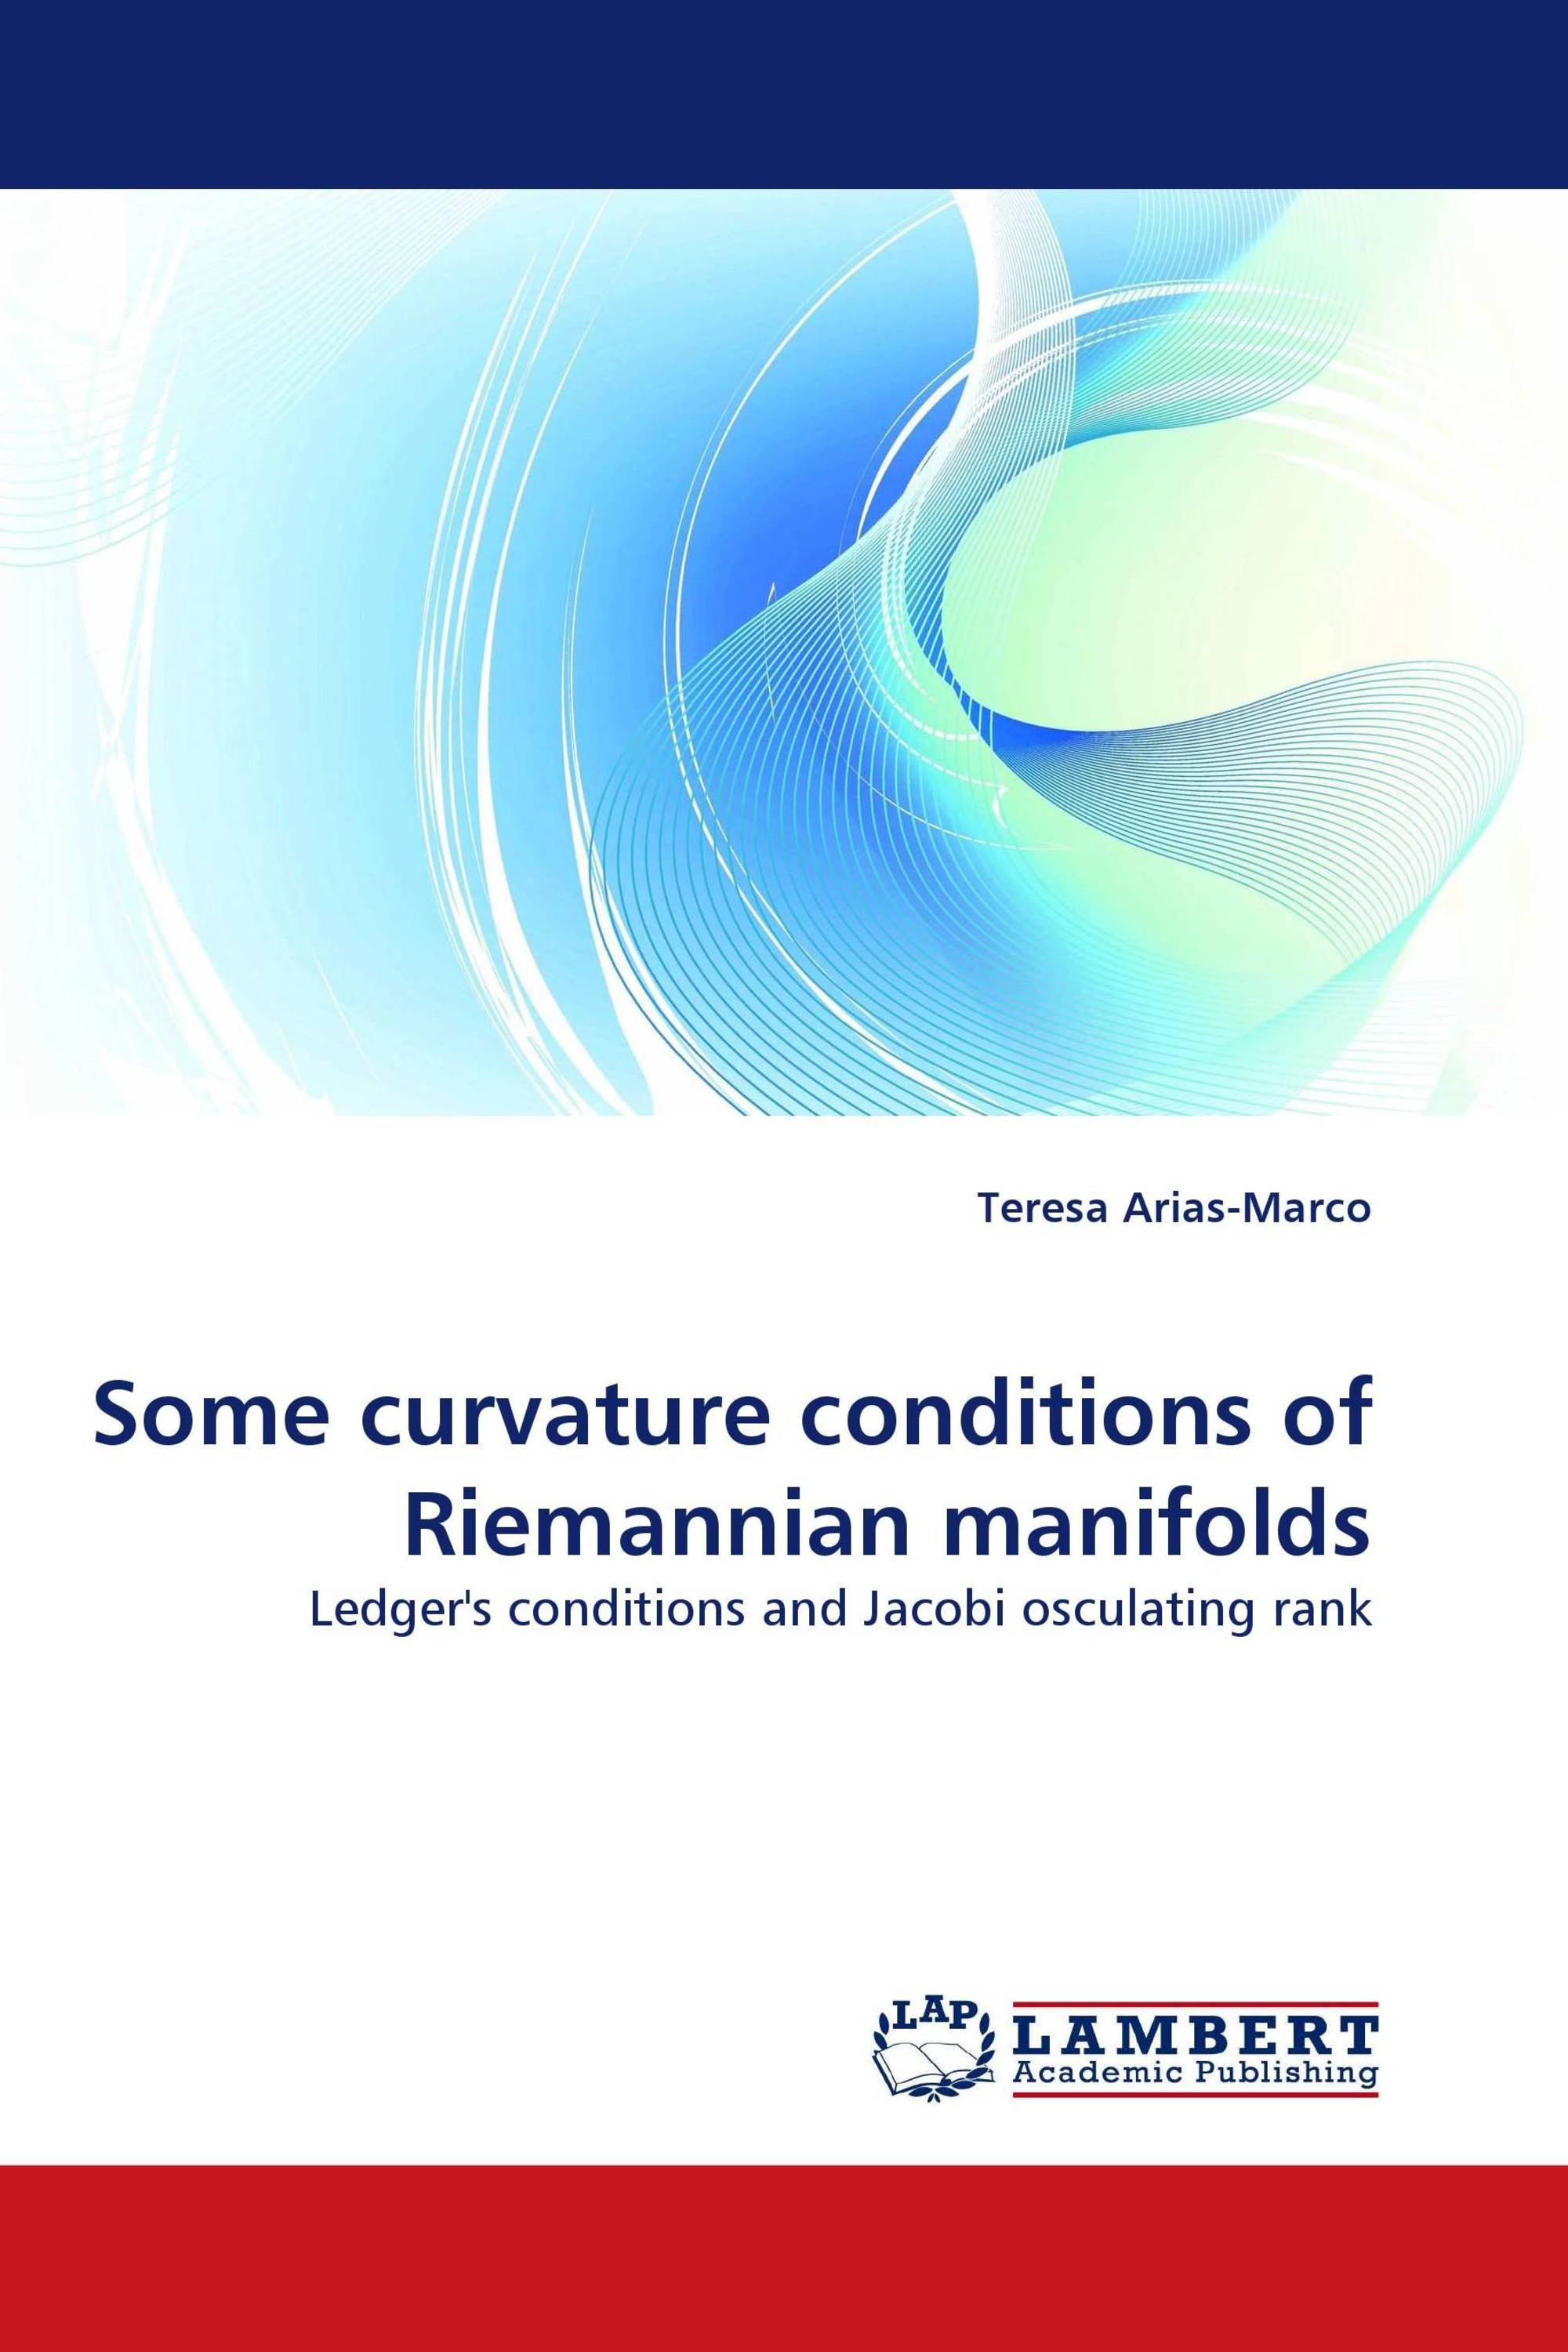 Some curvature conditions of Riemannian manifolds